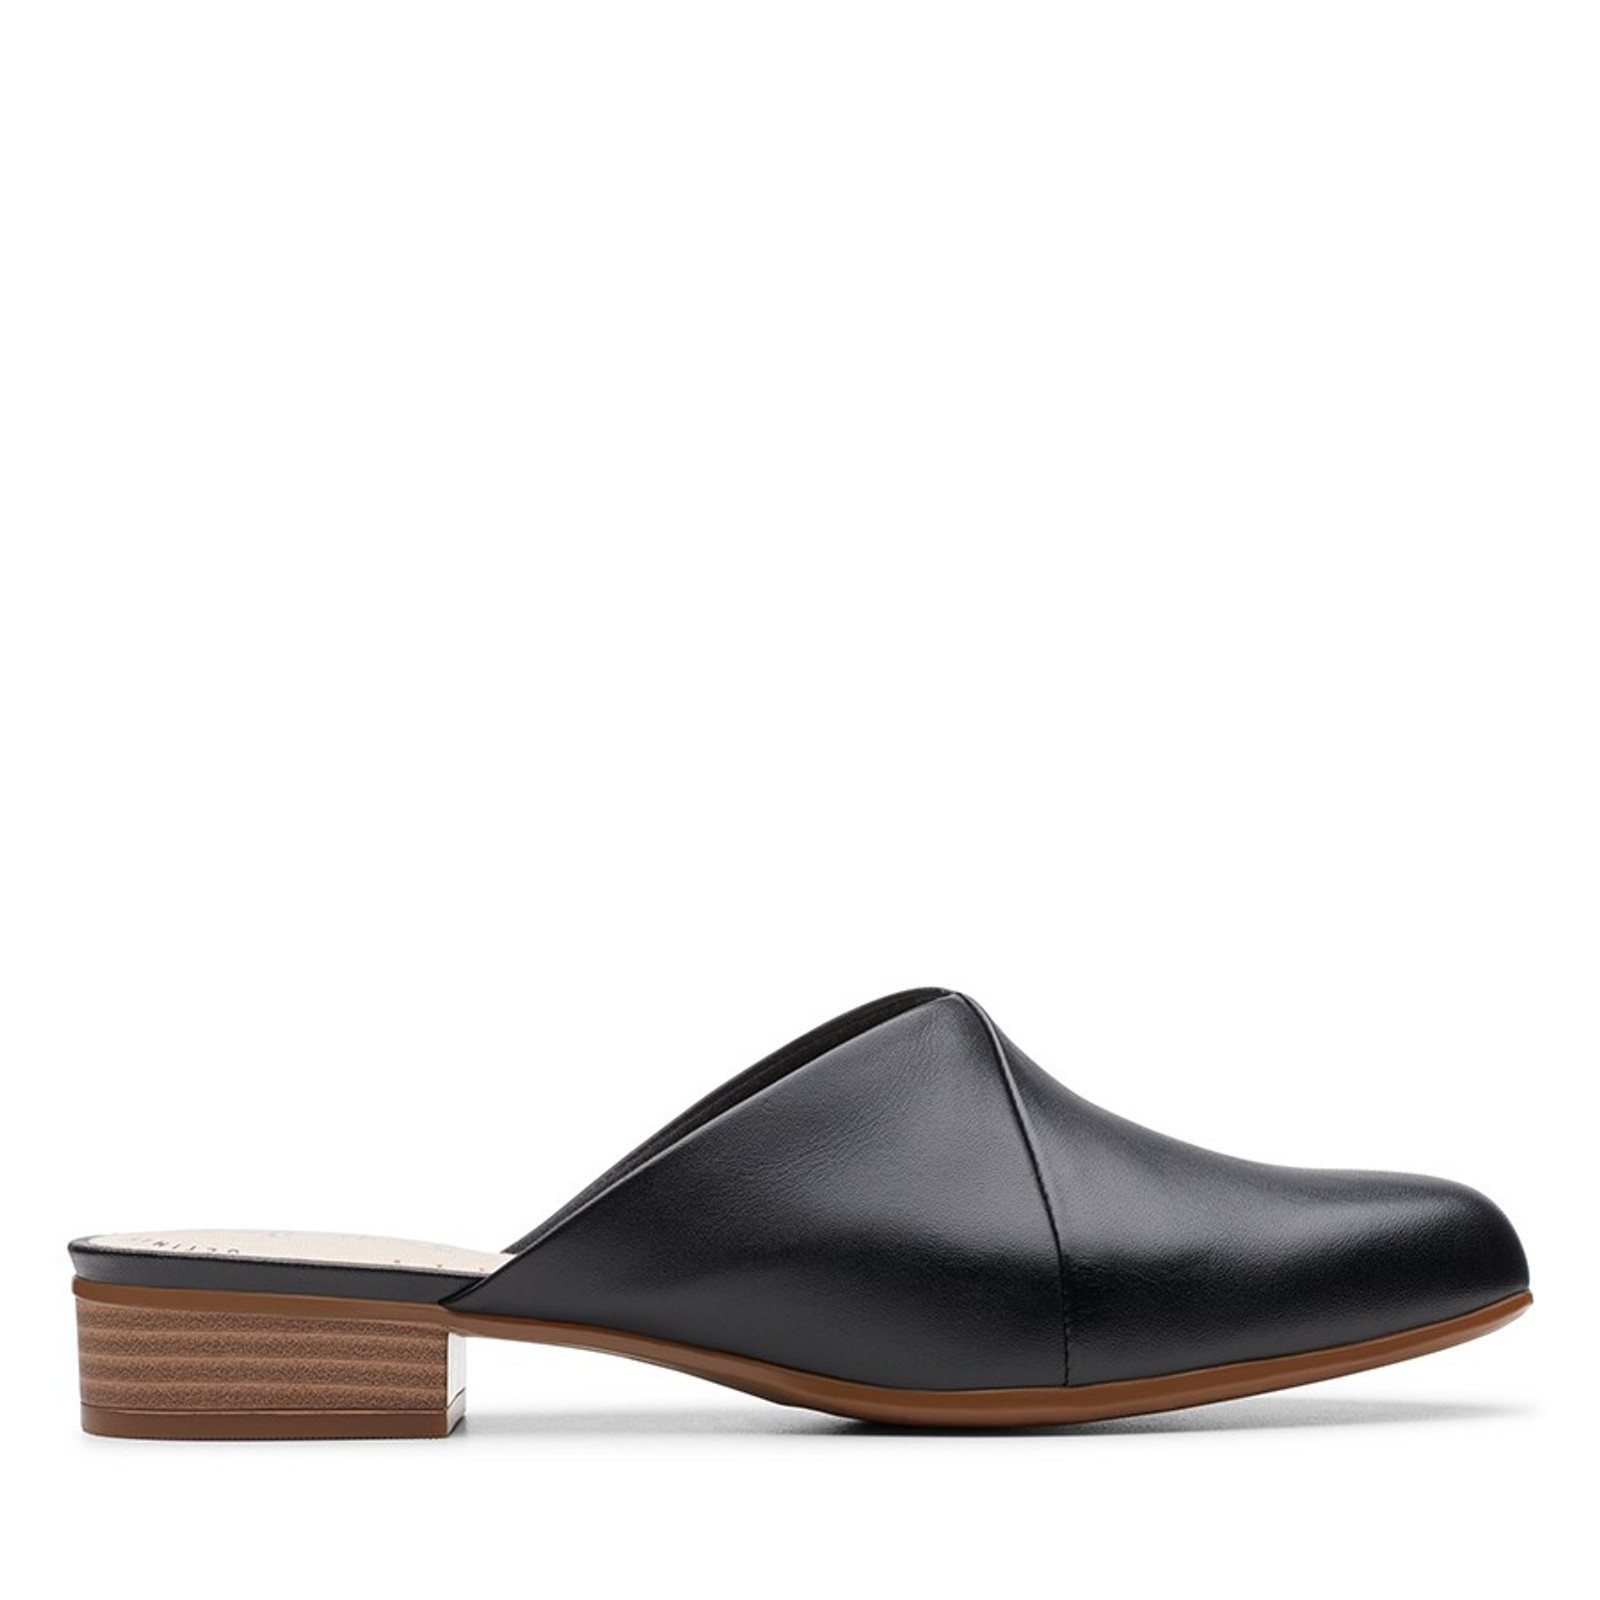 Clarks Womens JULIET WILLOW Black Leather